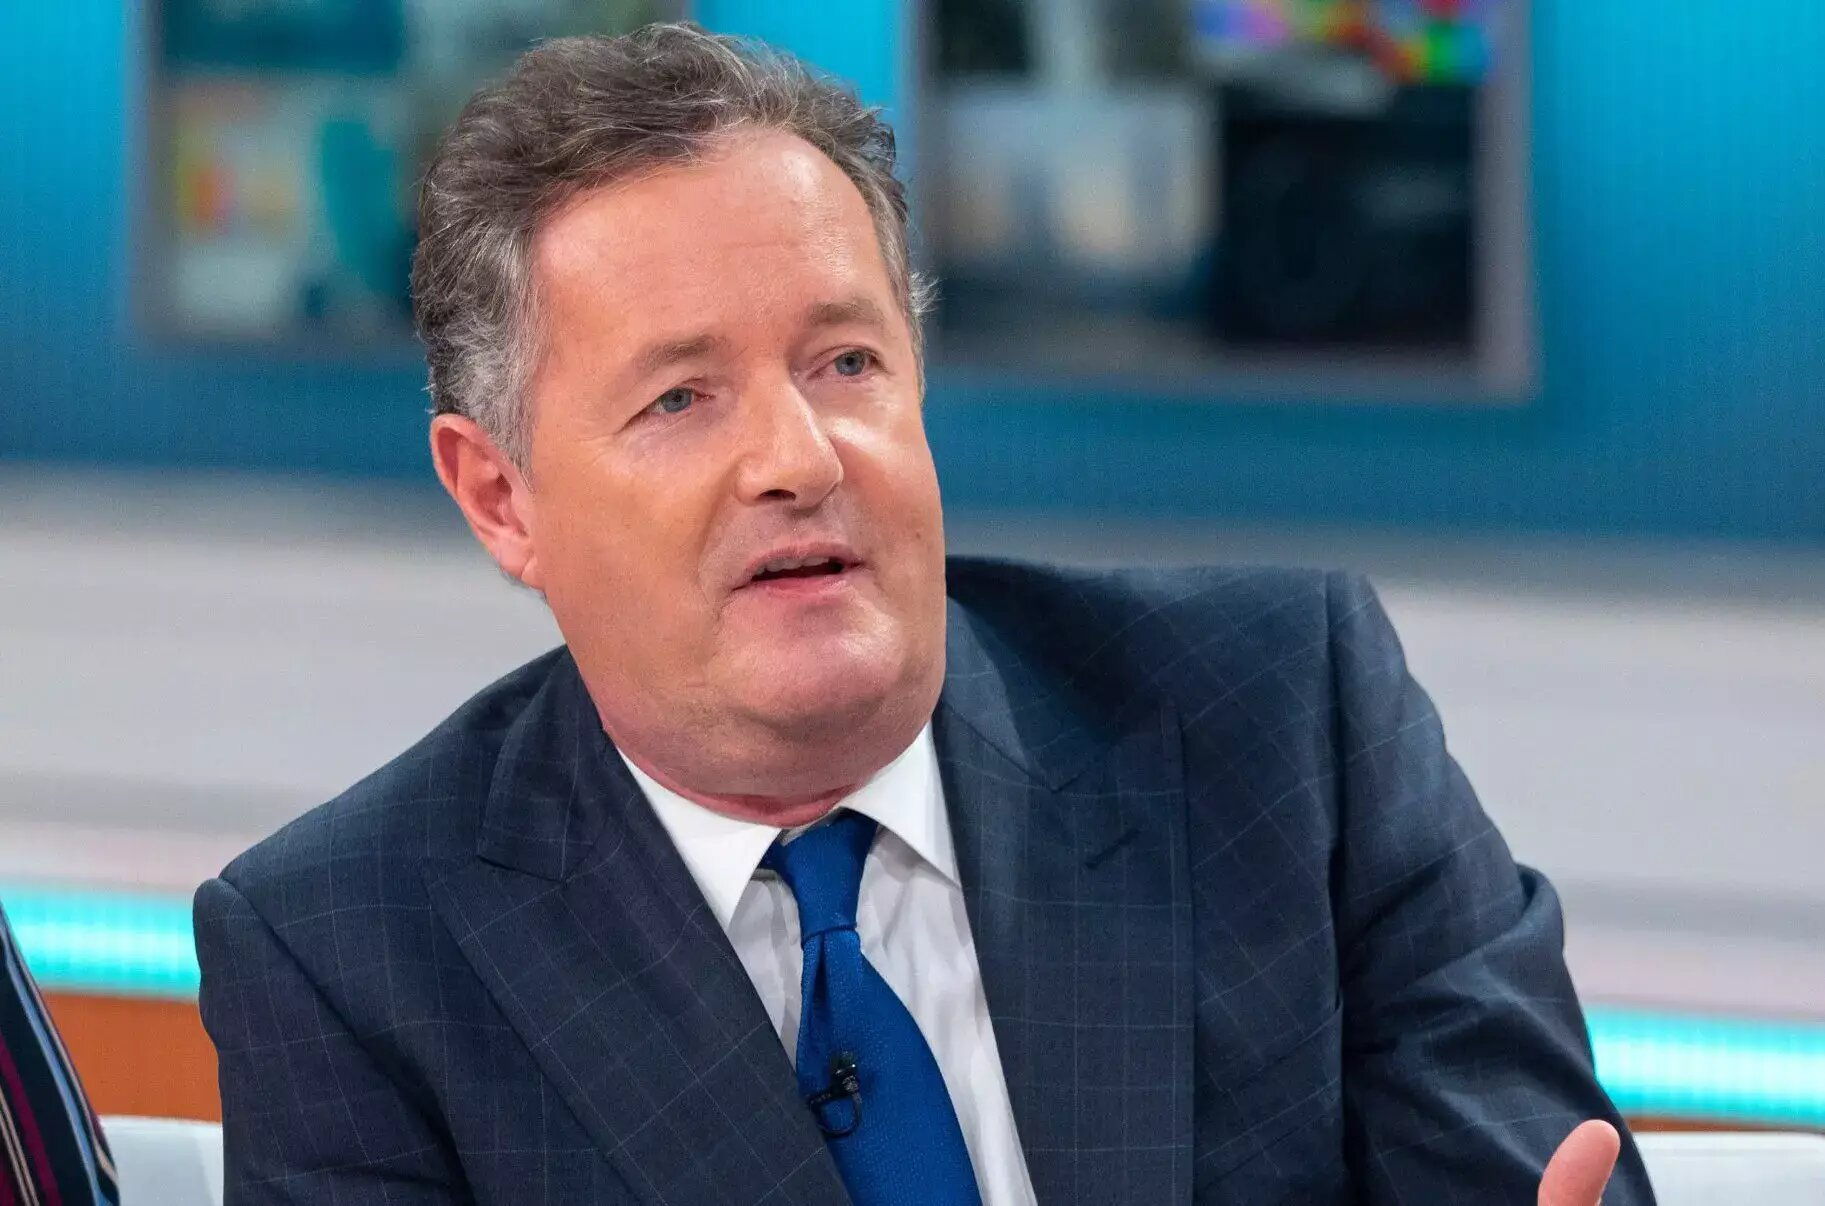 Photo of Piers Morgan accused of being obsessed with Meghan Markle as he shares screenshot of the first DM she sent to him